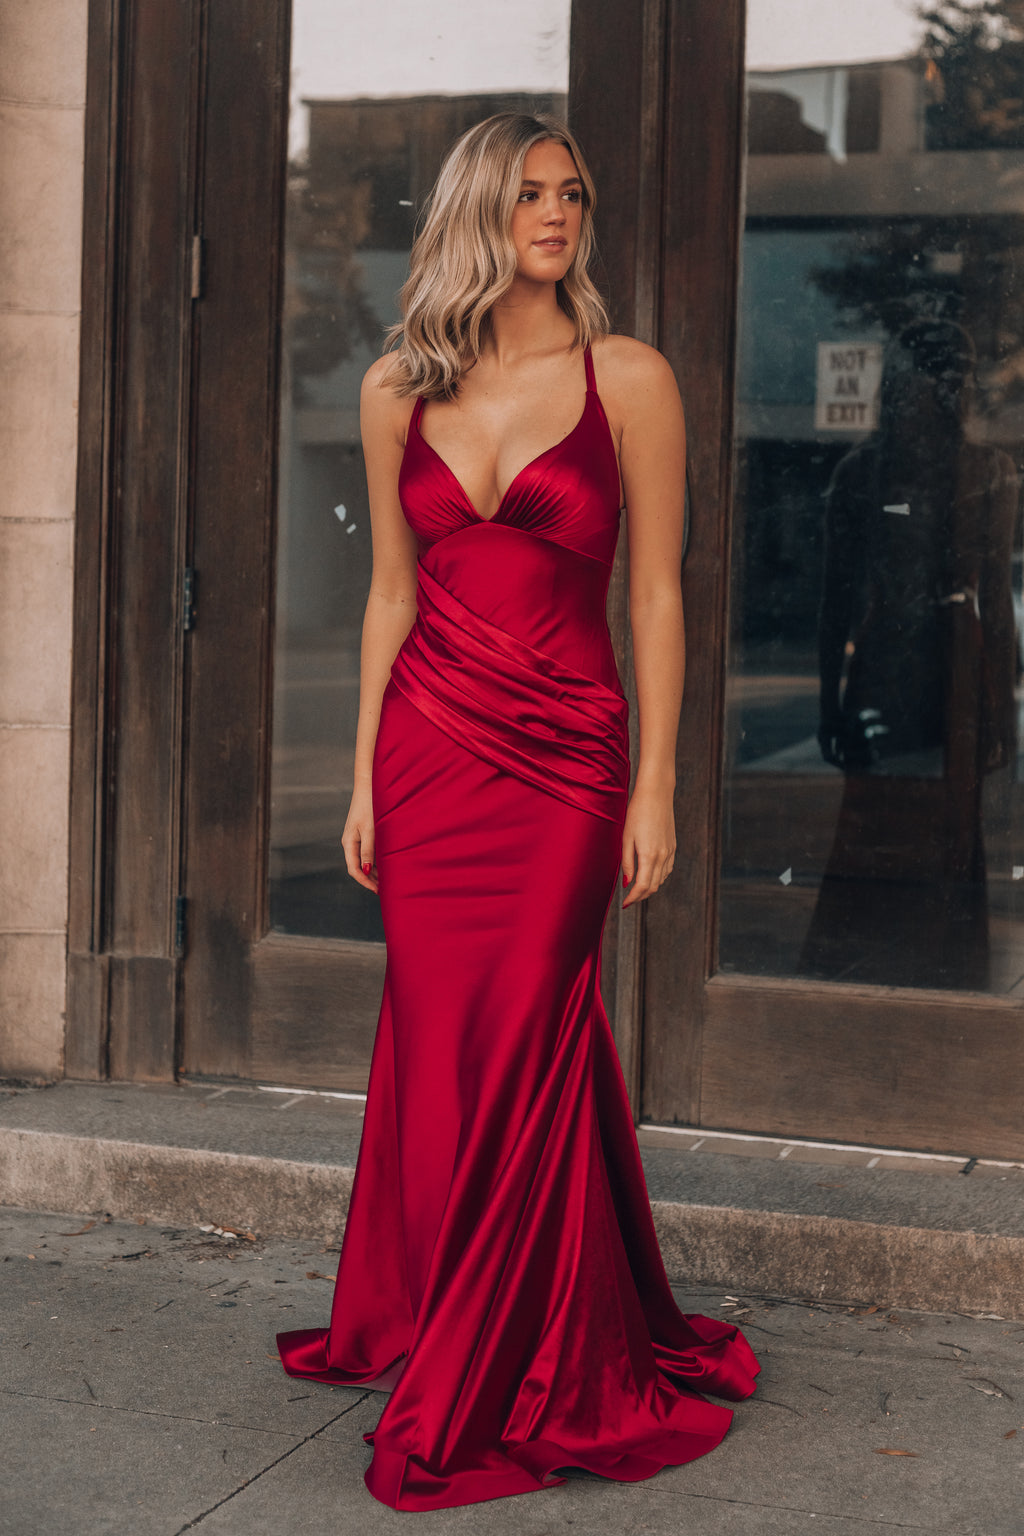 Edge Of Romance Gown (Red)